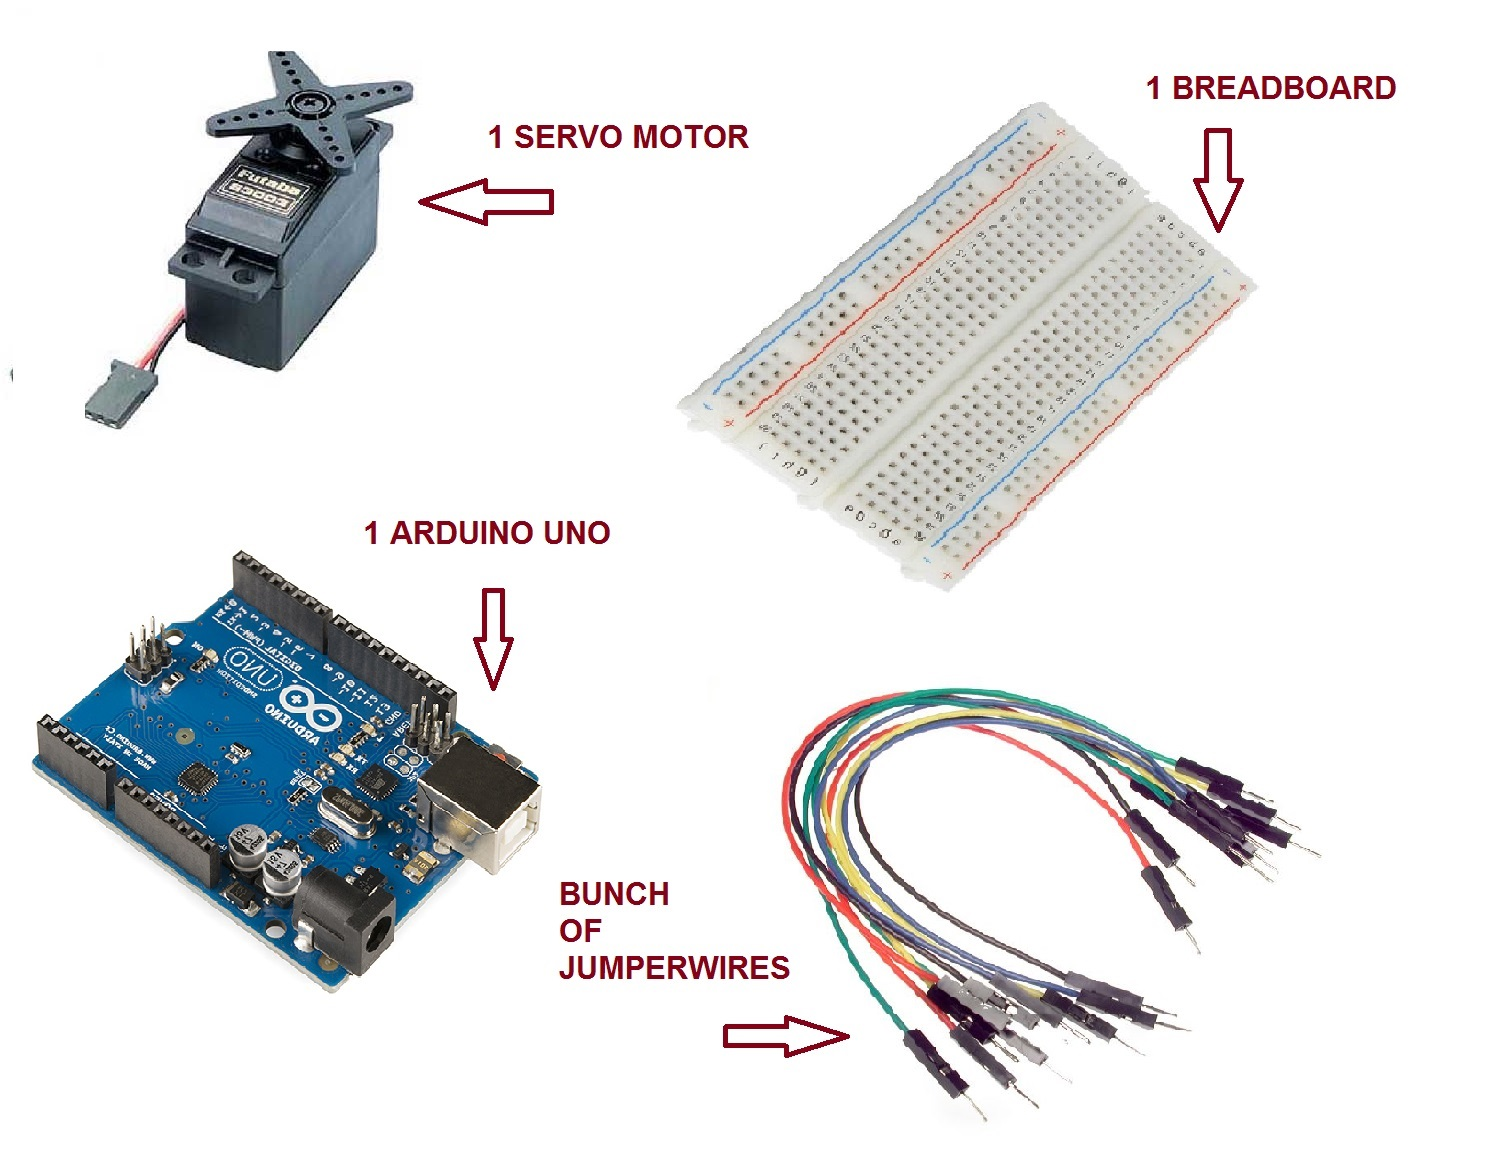 Easiest Way To Get Introduced Into The Fascinating Arduino World Servo Wiring Diagram Circuit